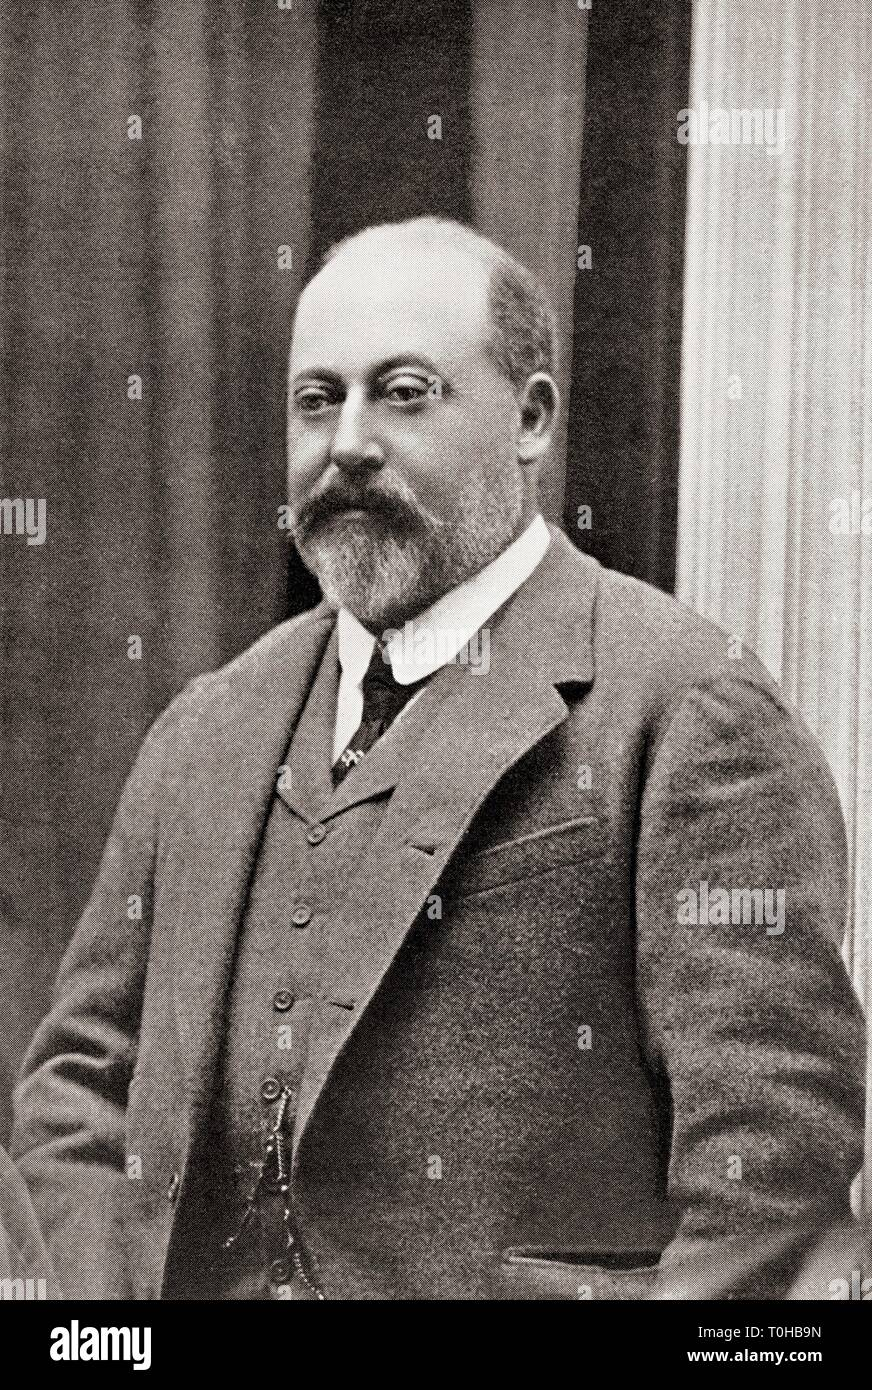 King of United Kingdom and British Dominions, Edward VII - Stock Image